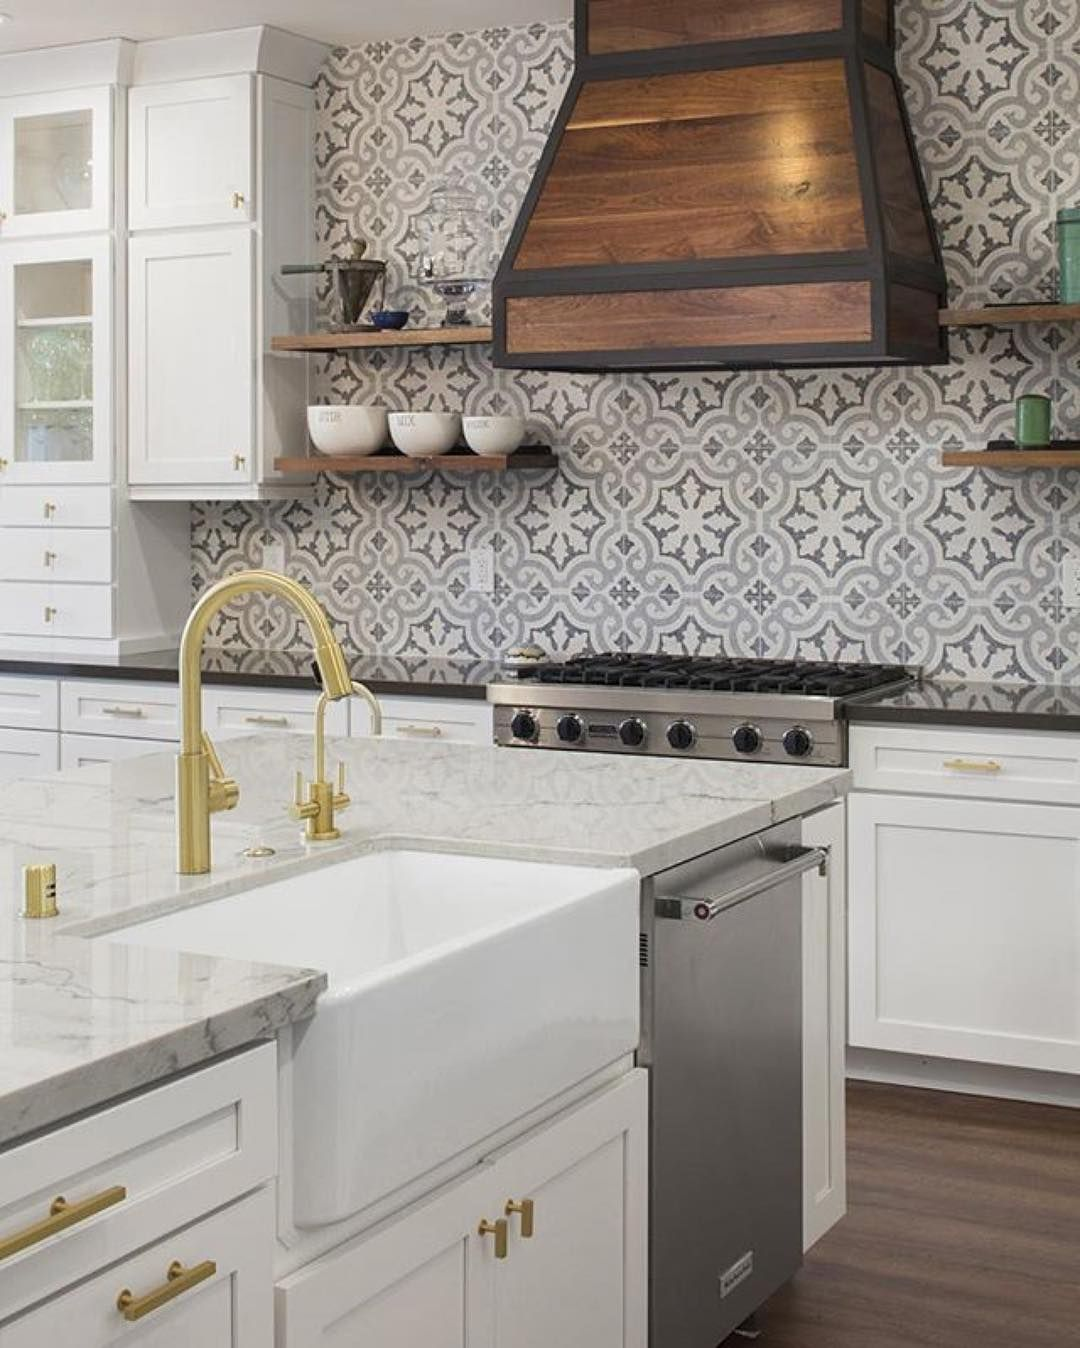 6 Outstanding Kitchen Backsplash Ideas That Make You Feel Like a Professional Chef – Houseminds